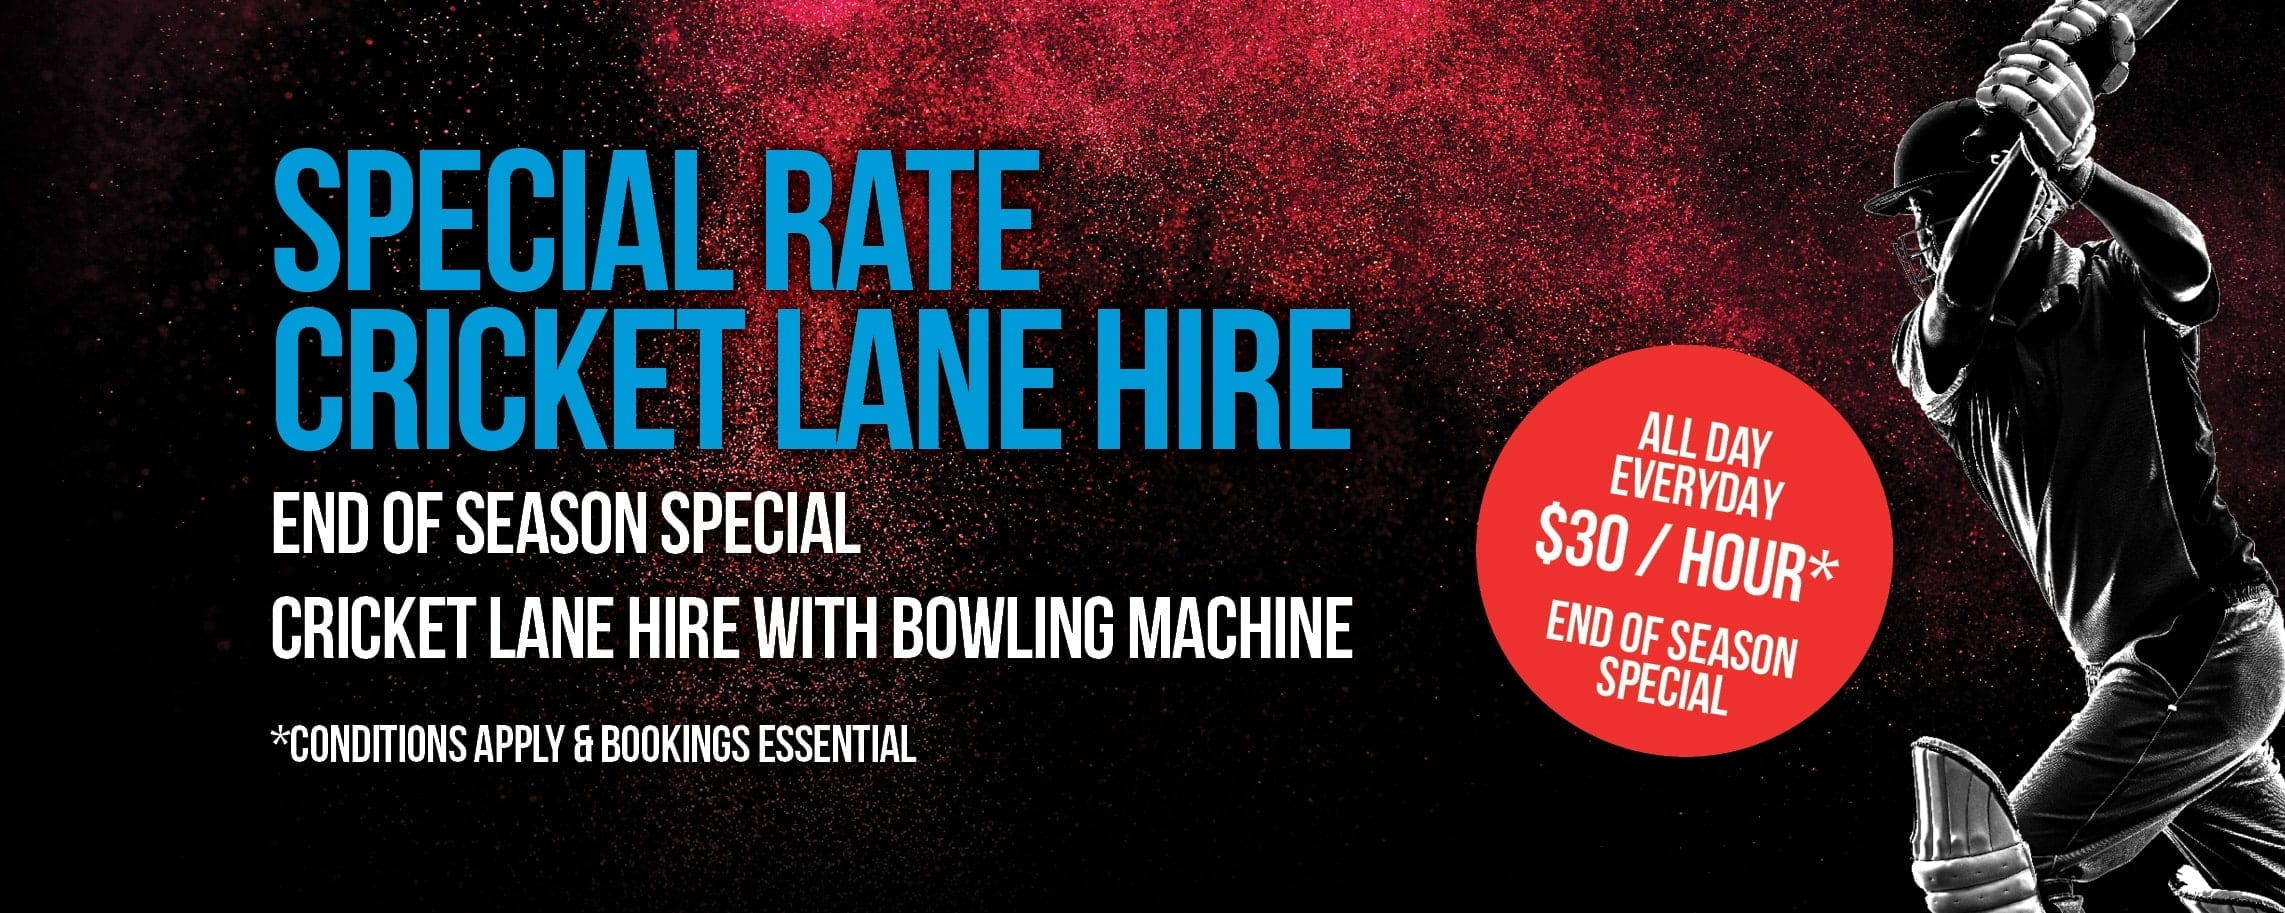 Cricket Lane Hire - End Of Season Special